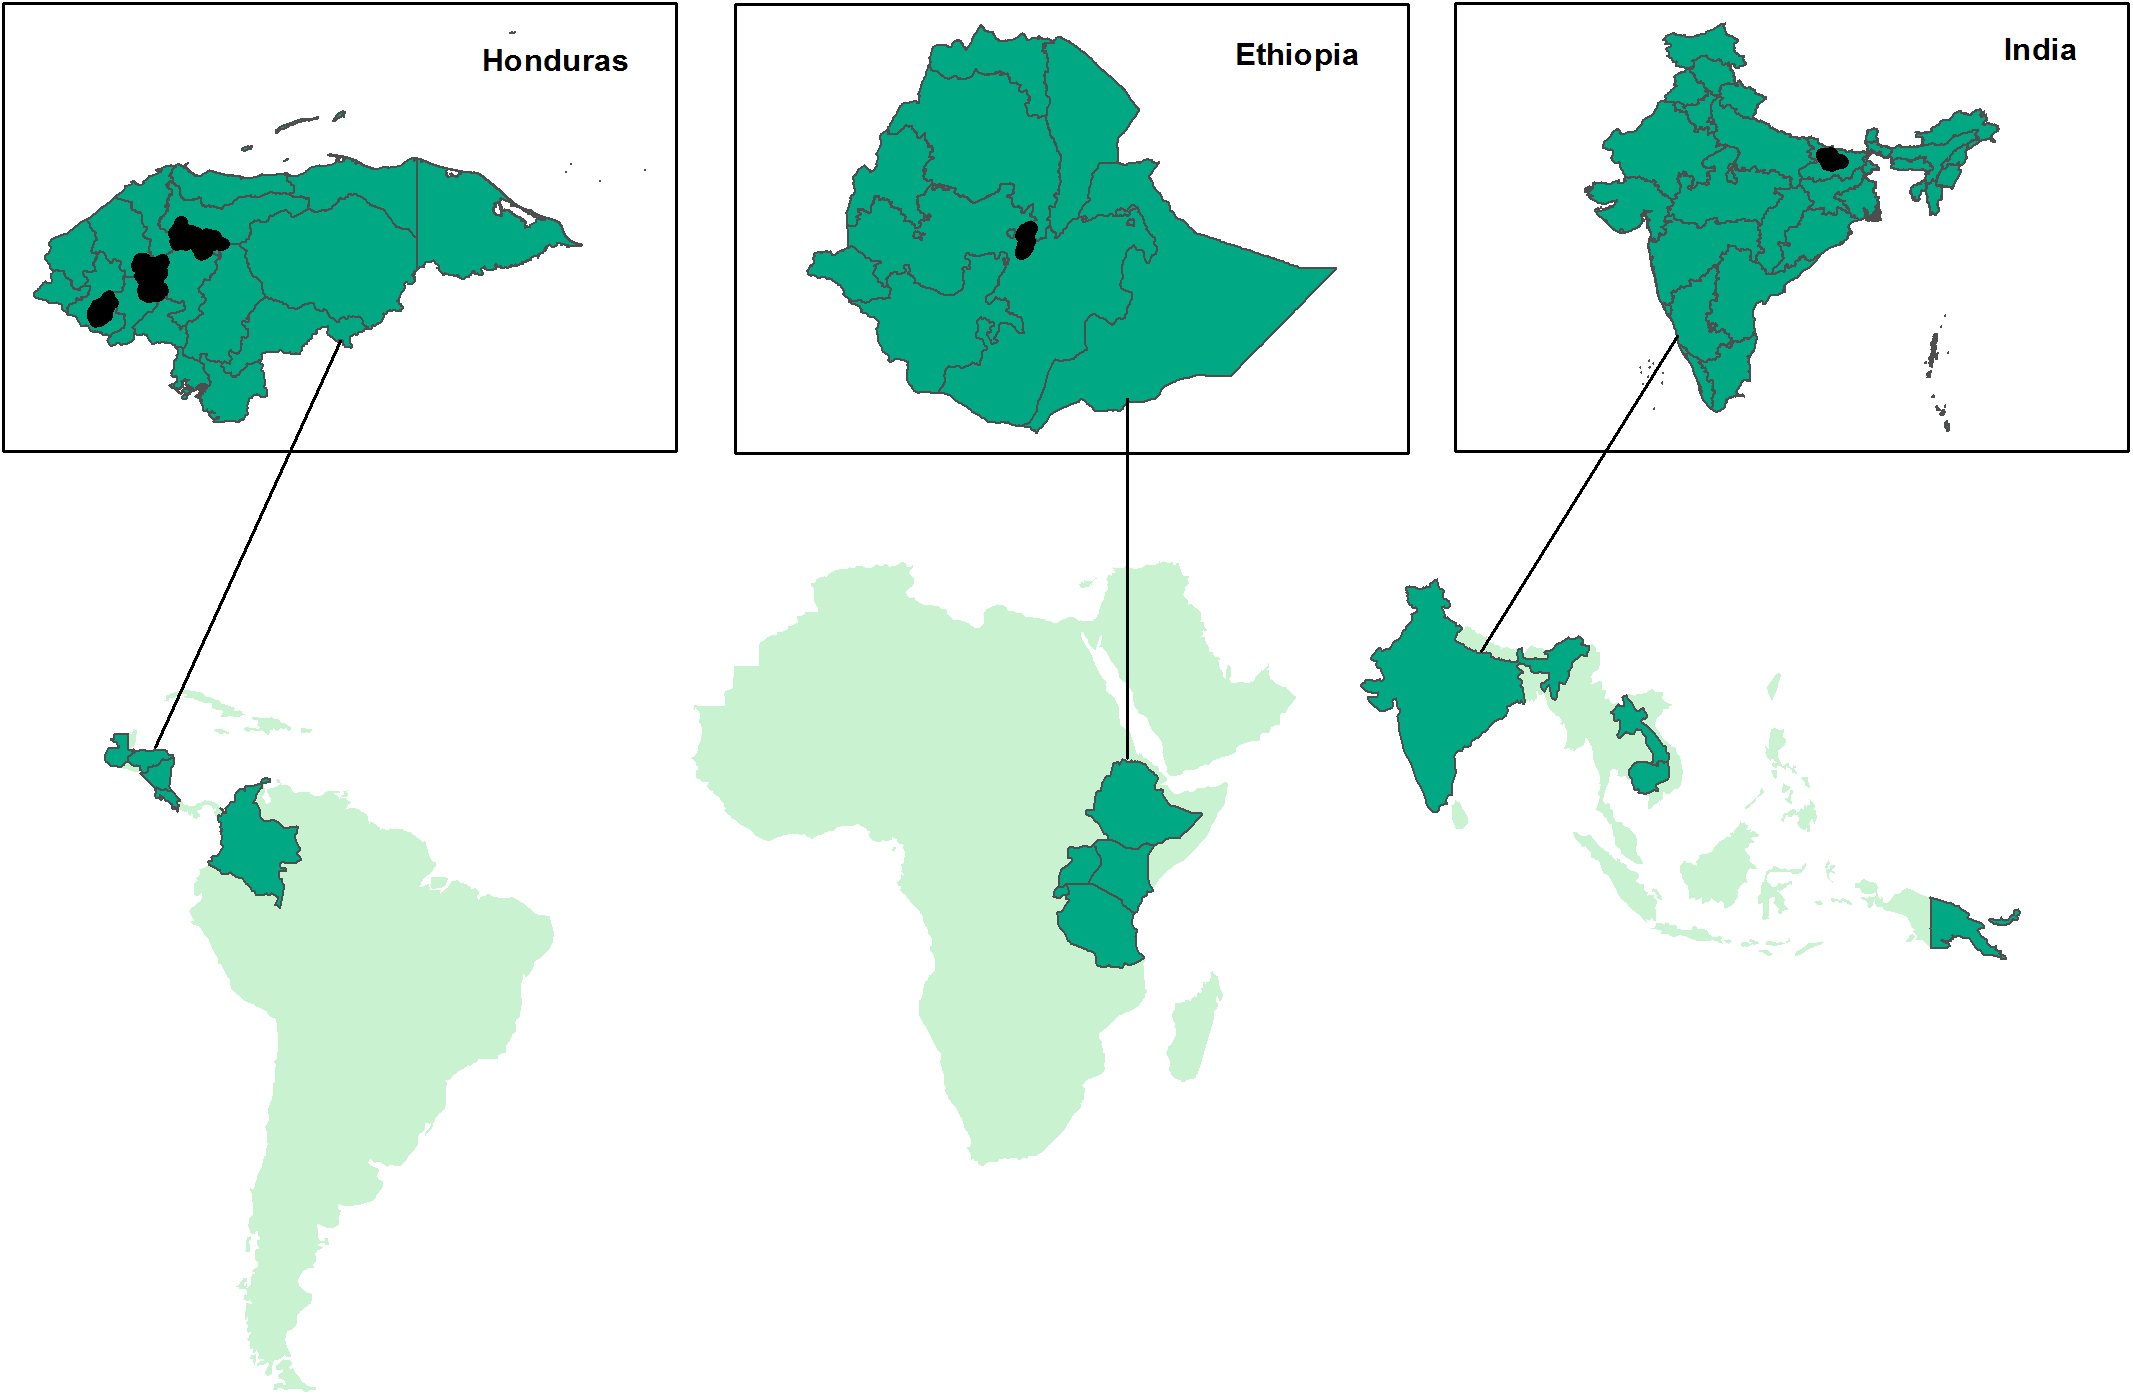 Map of locations of study participants in Honduras, Ethiopia, and India.